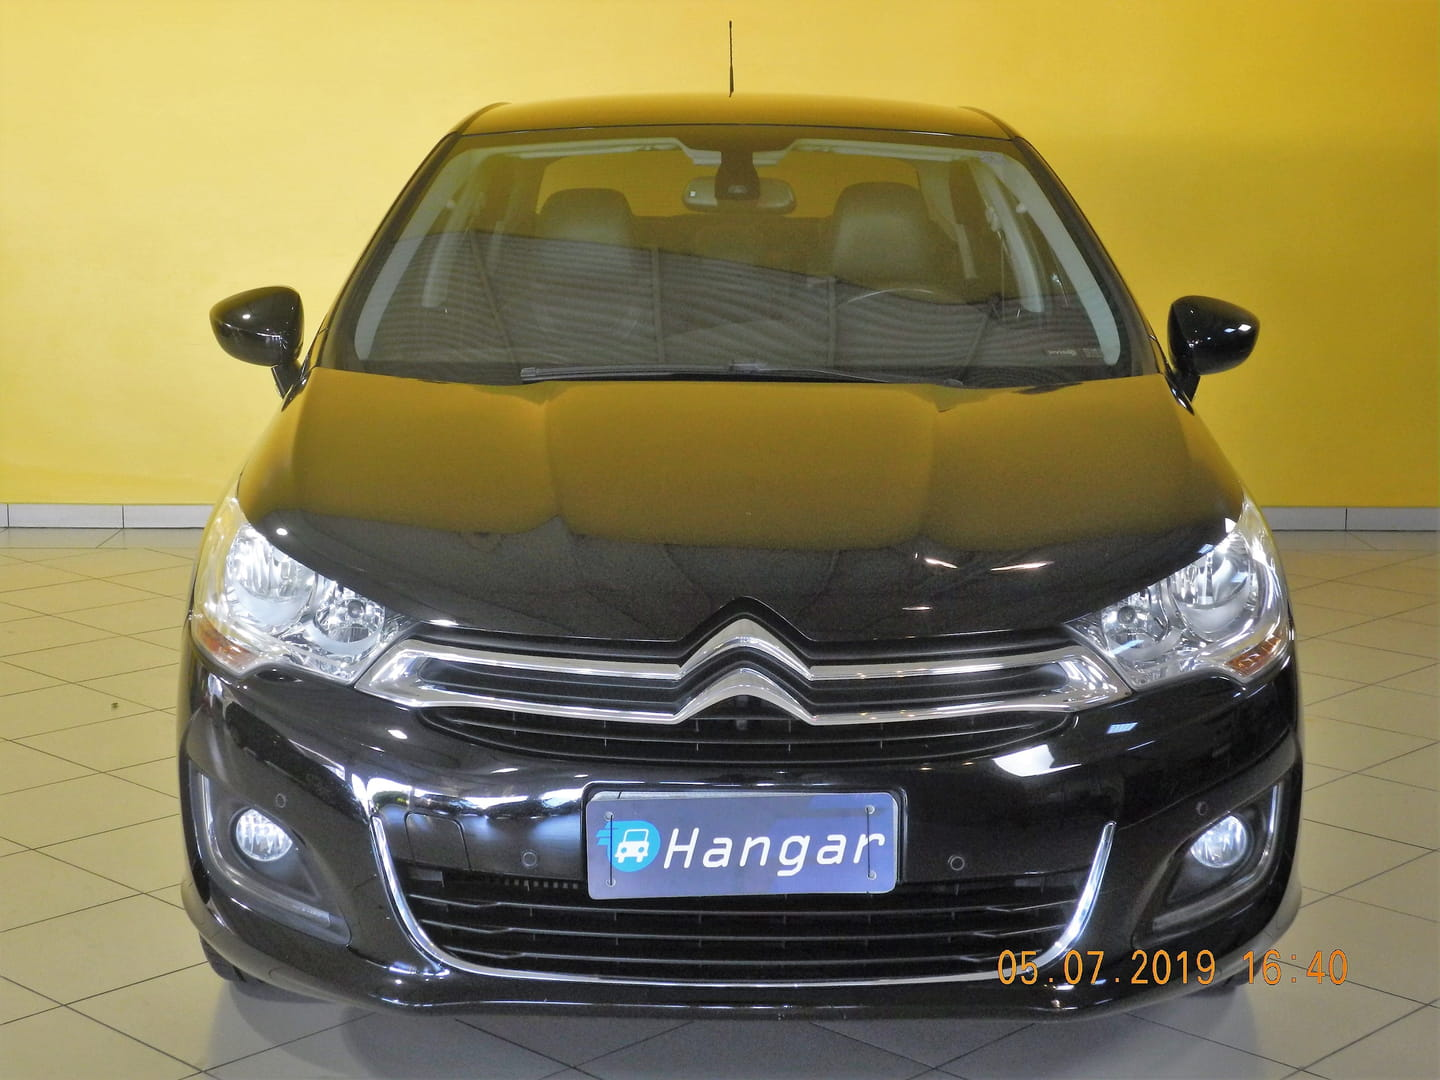 CITROEN C4 LOUNGE 1.6 EXCLUSIVE 16V TURBO GASOLINA 4P AUT